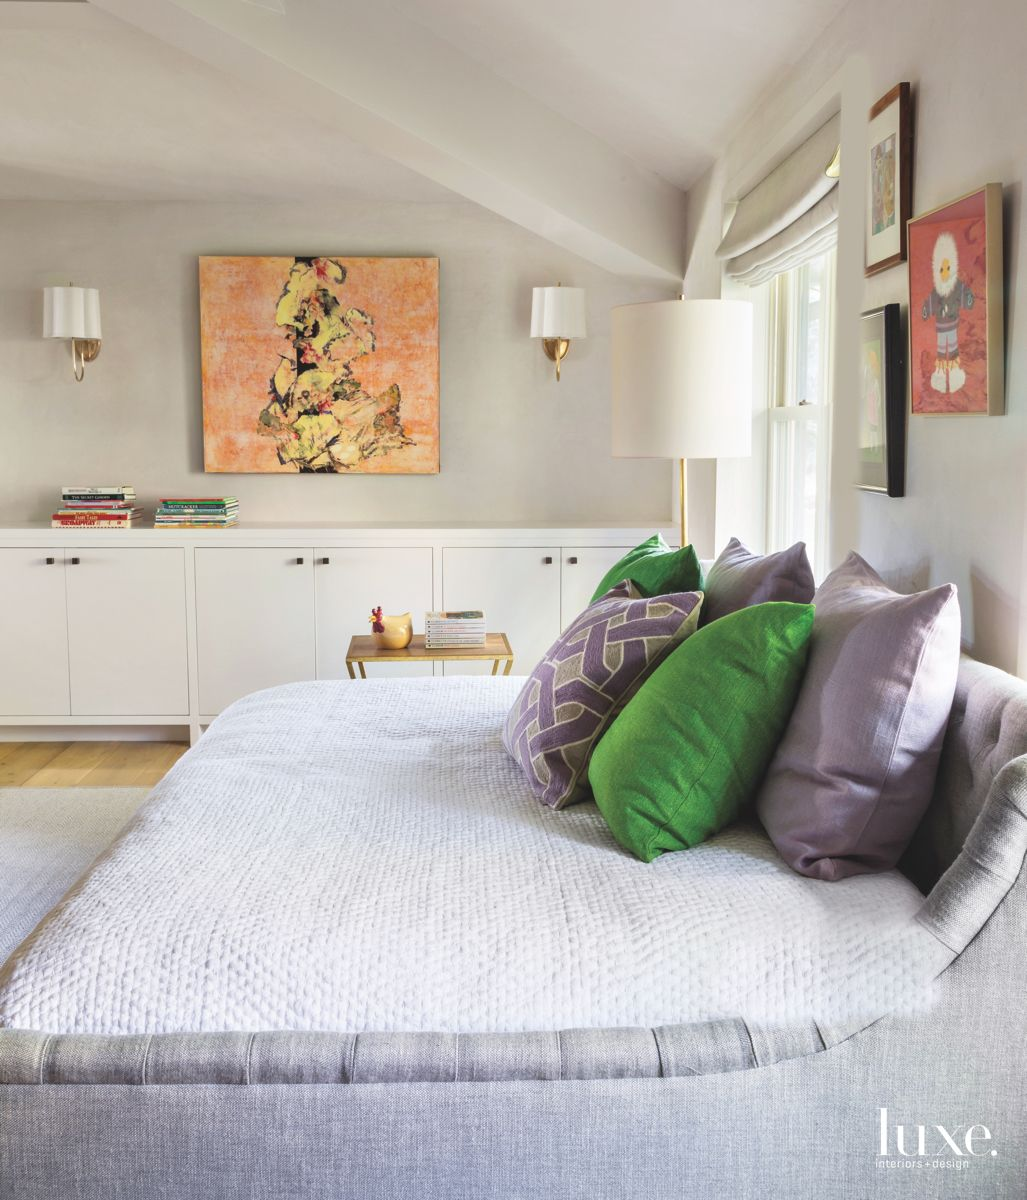 Peach Artwork Bedroom with Chicken Ceramic Piece and Green Pillows